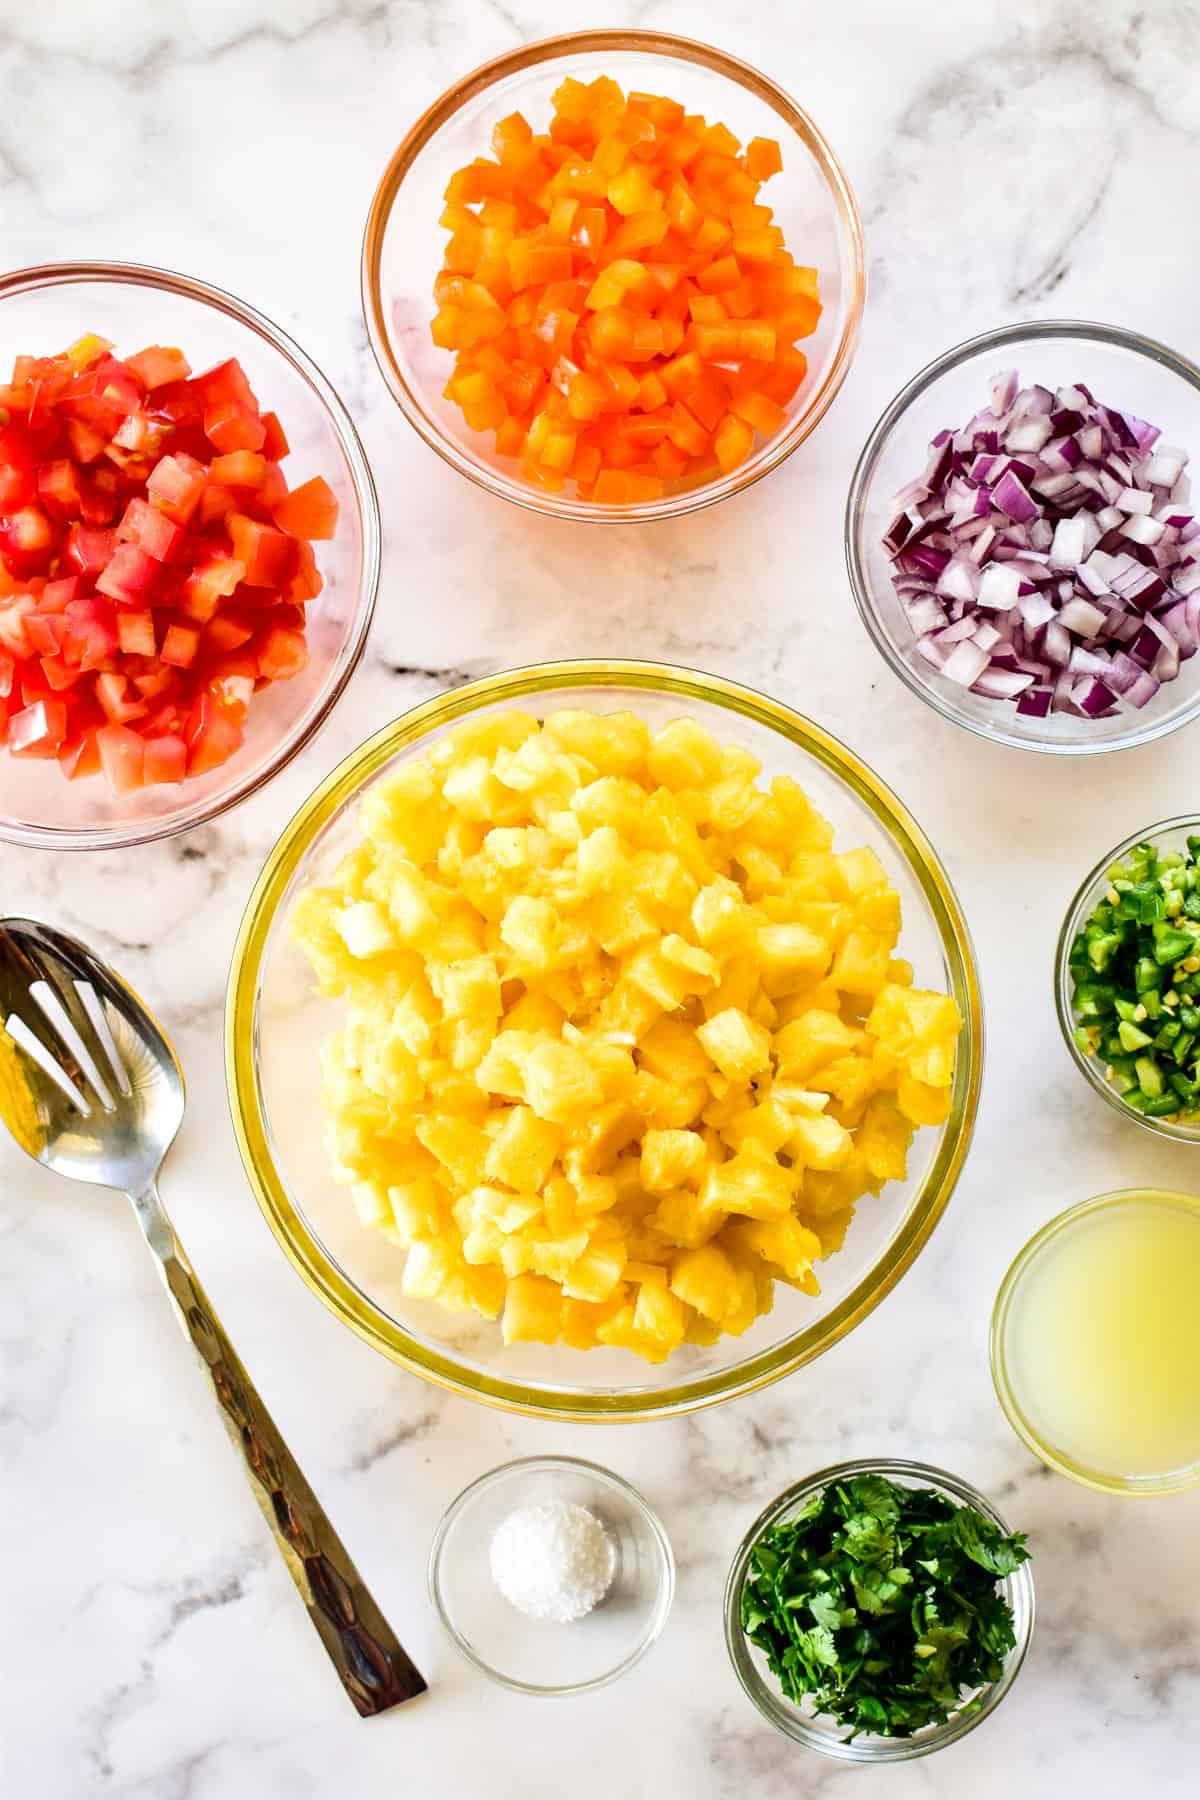 Pineapple Salsa ingredients chopped in glass bowls